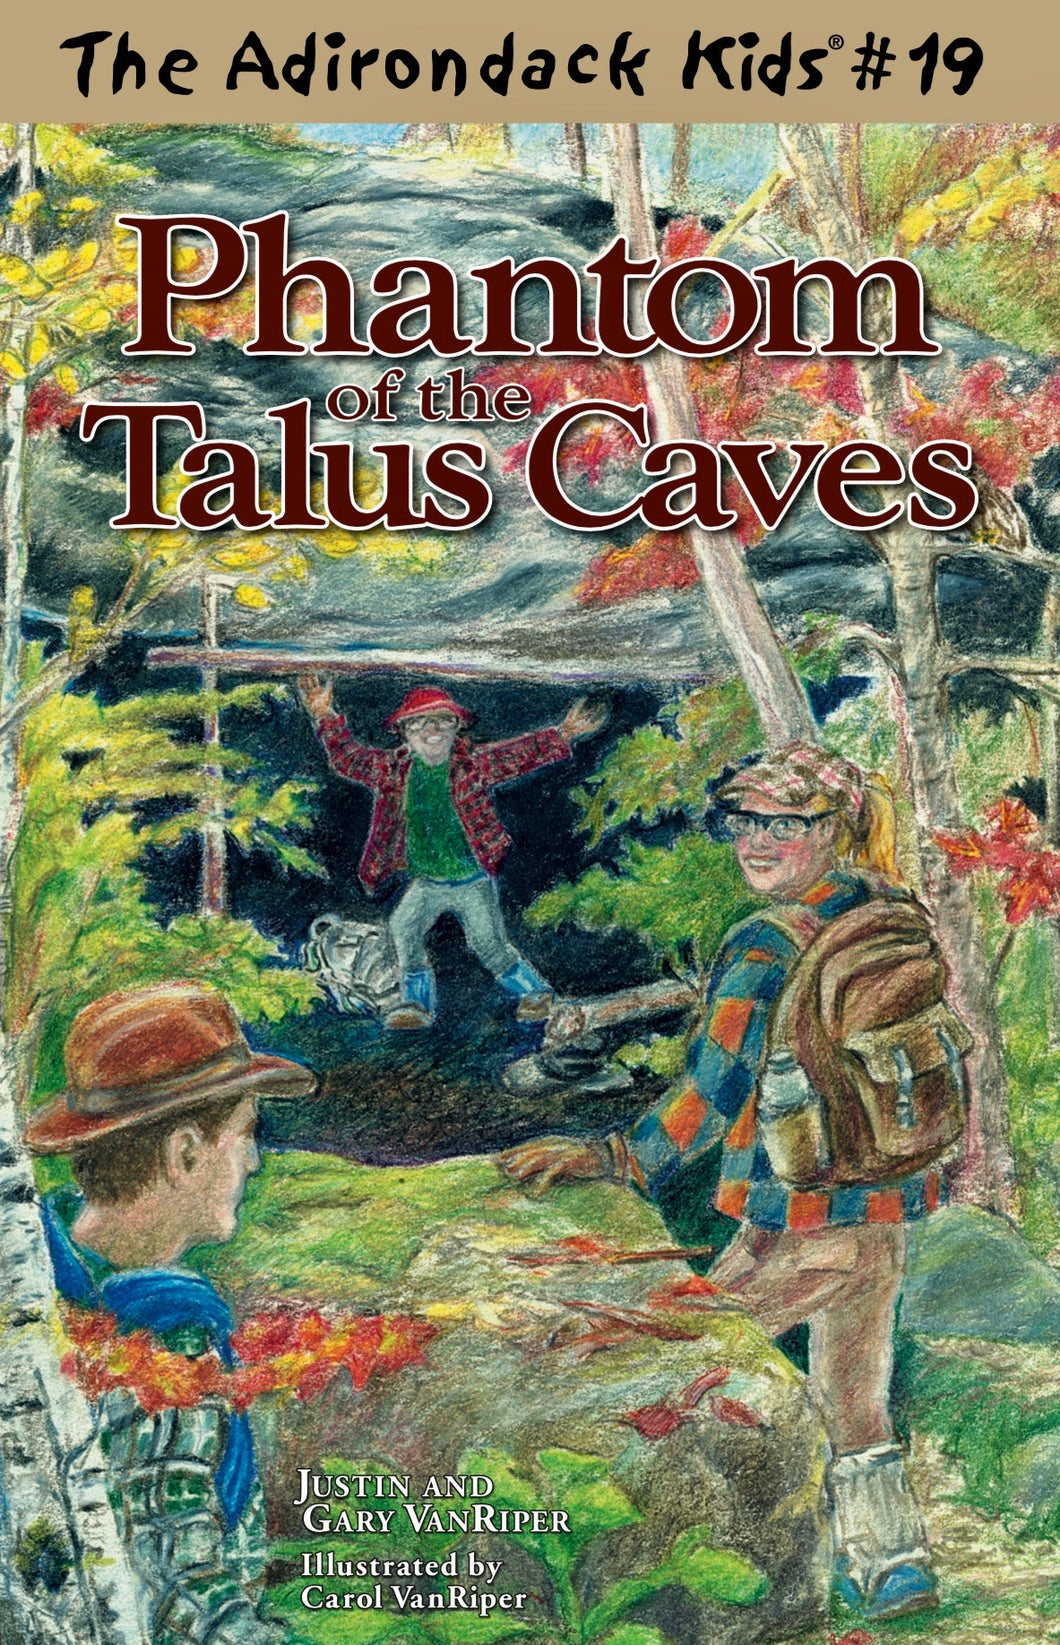 The Adirondack Kids® #19: Phantom of the Talus Caves